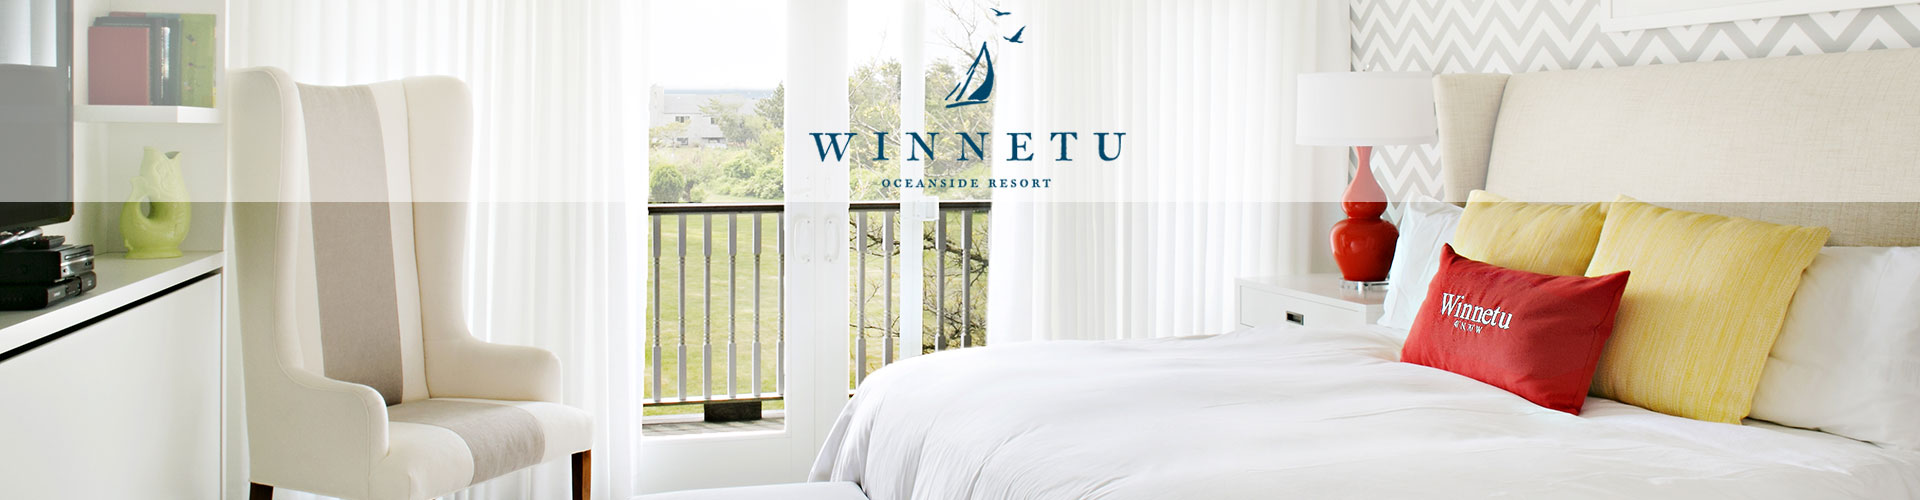 Winnetu Oceanside Resort